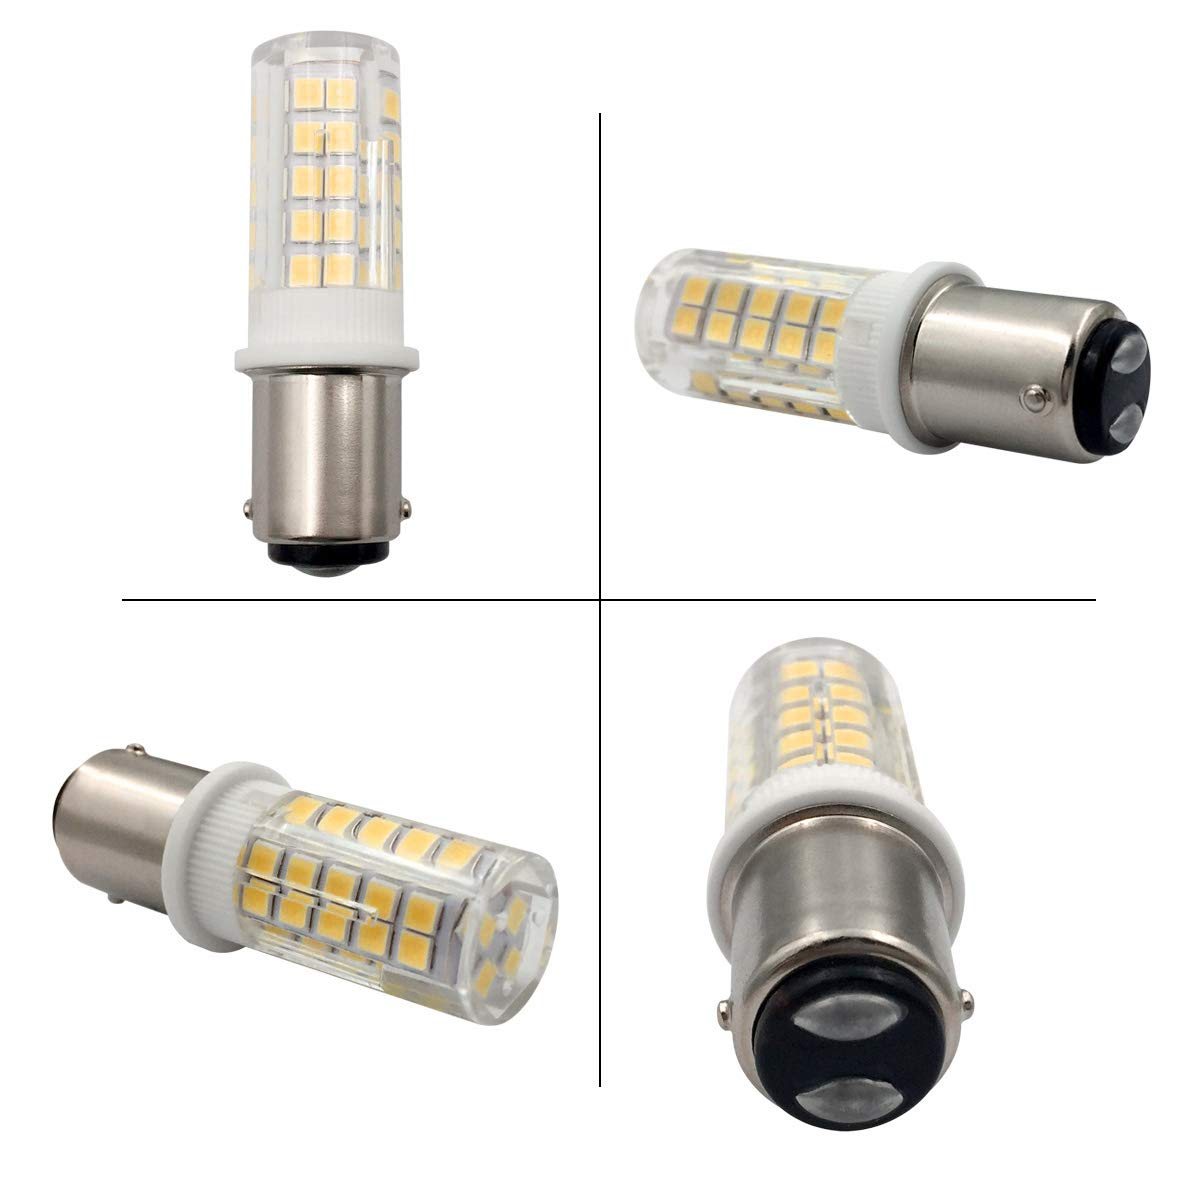 ZHENMING Ba15d 120V LED Light Bulb Dimmable 8 Watts Ba15d Double Bayonet Base T3/T4/C7/S6 Halogen Bulbs Equivalent for Sewing Machine Lamp Warm White ...